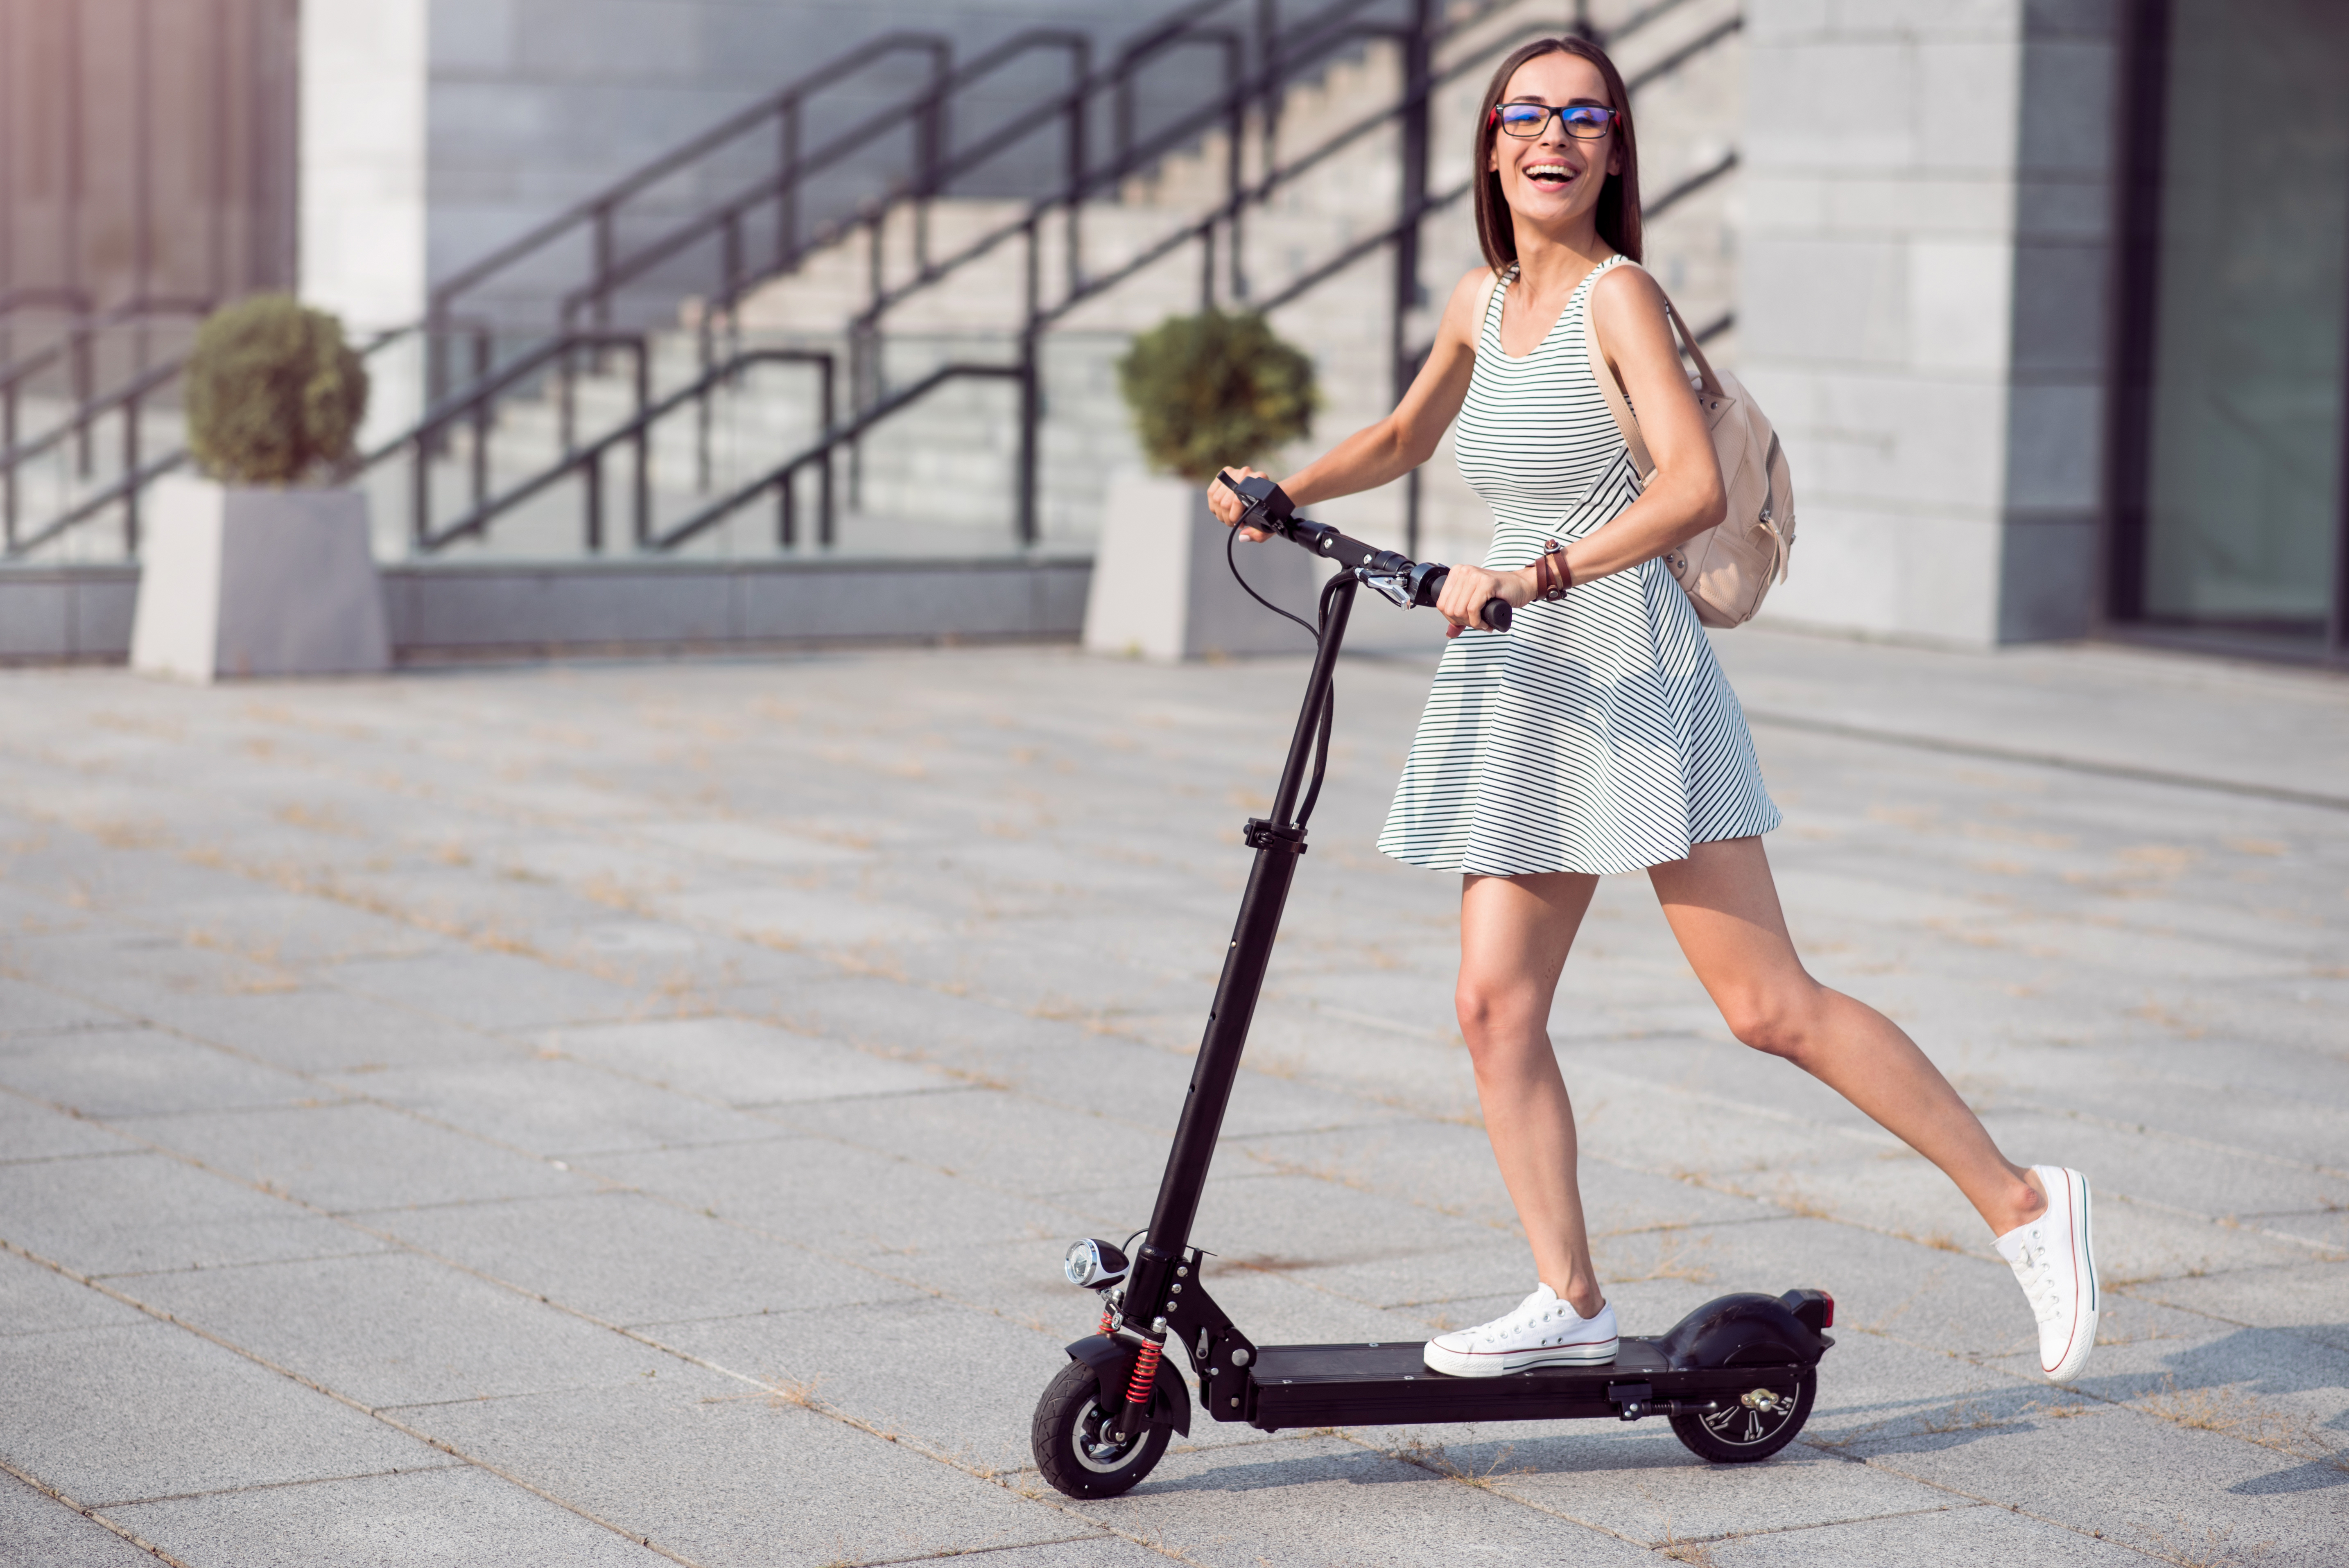 UT reins in scooter speeds with campus geofencing - Curbed Austin